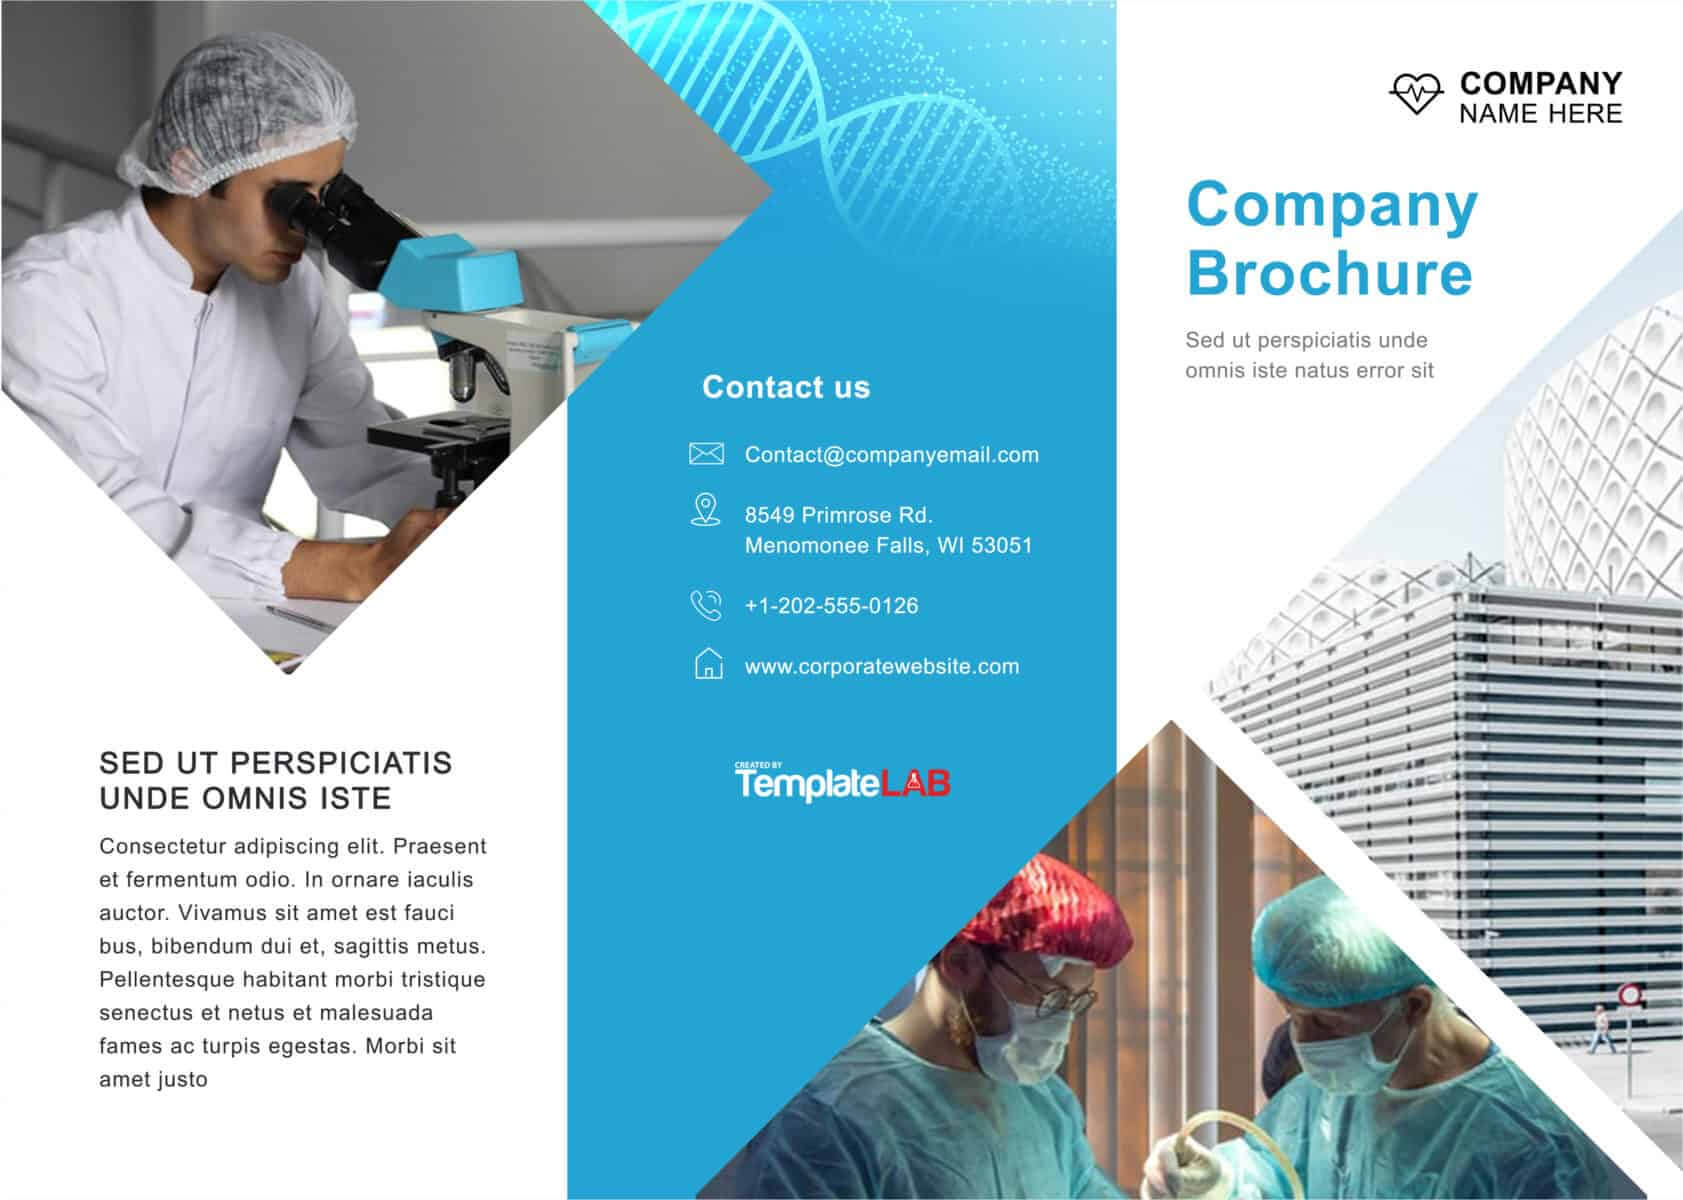 33 Free Brochure Templates (Word + Pdf) ᐅ Template Lab With Regard To Engineering Brochure Templates Free Download